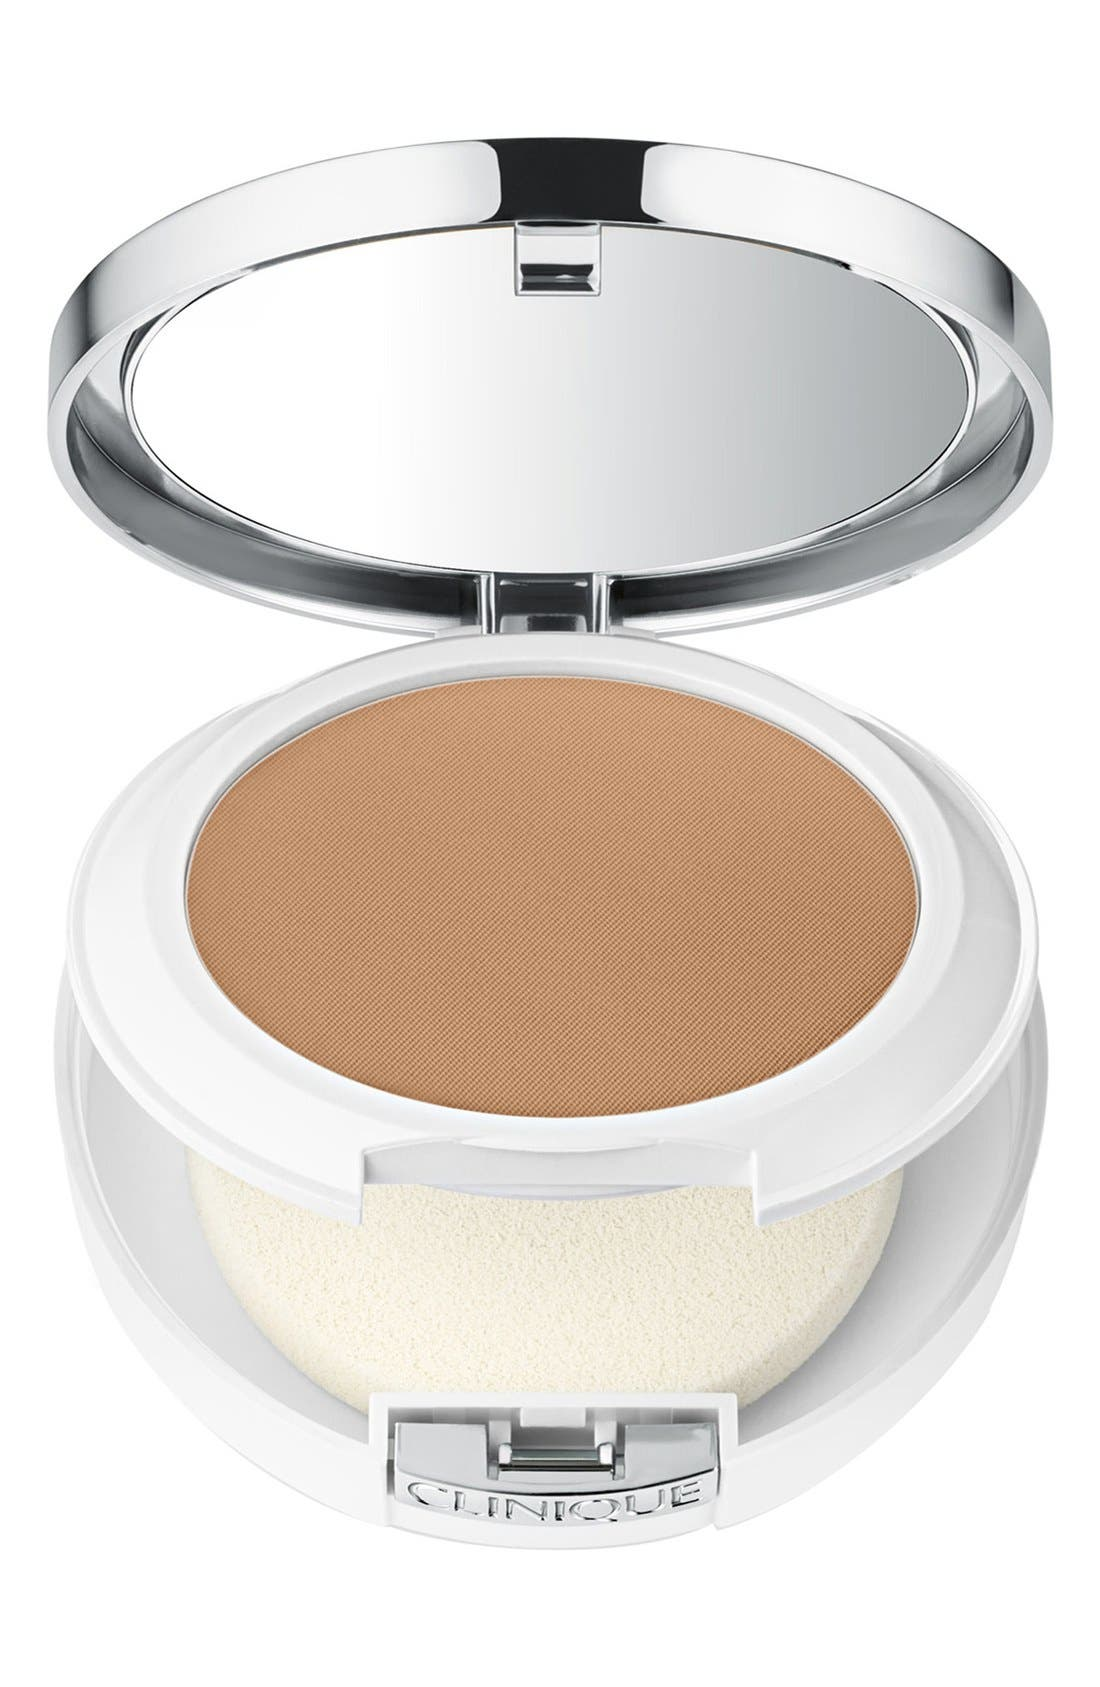 Clinique 'Beyond Perfecting' Powder Foundation + Concealer